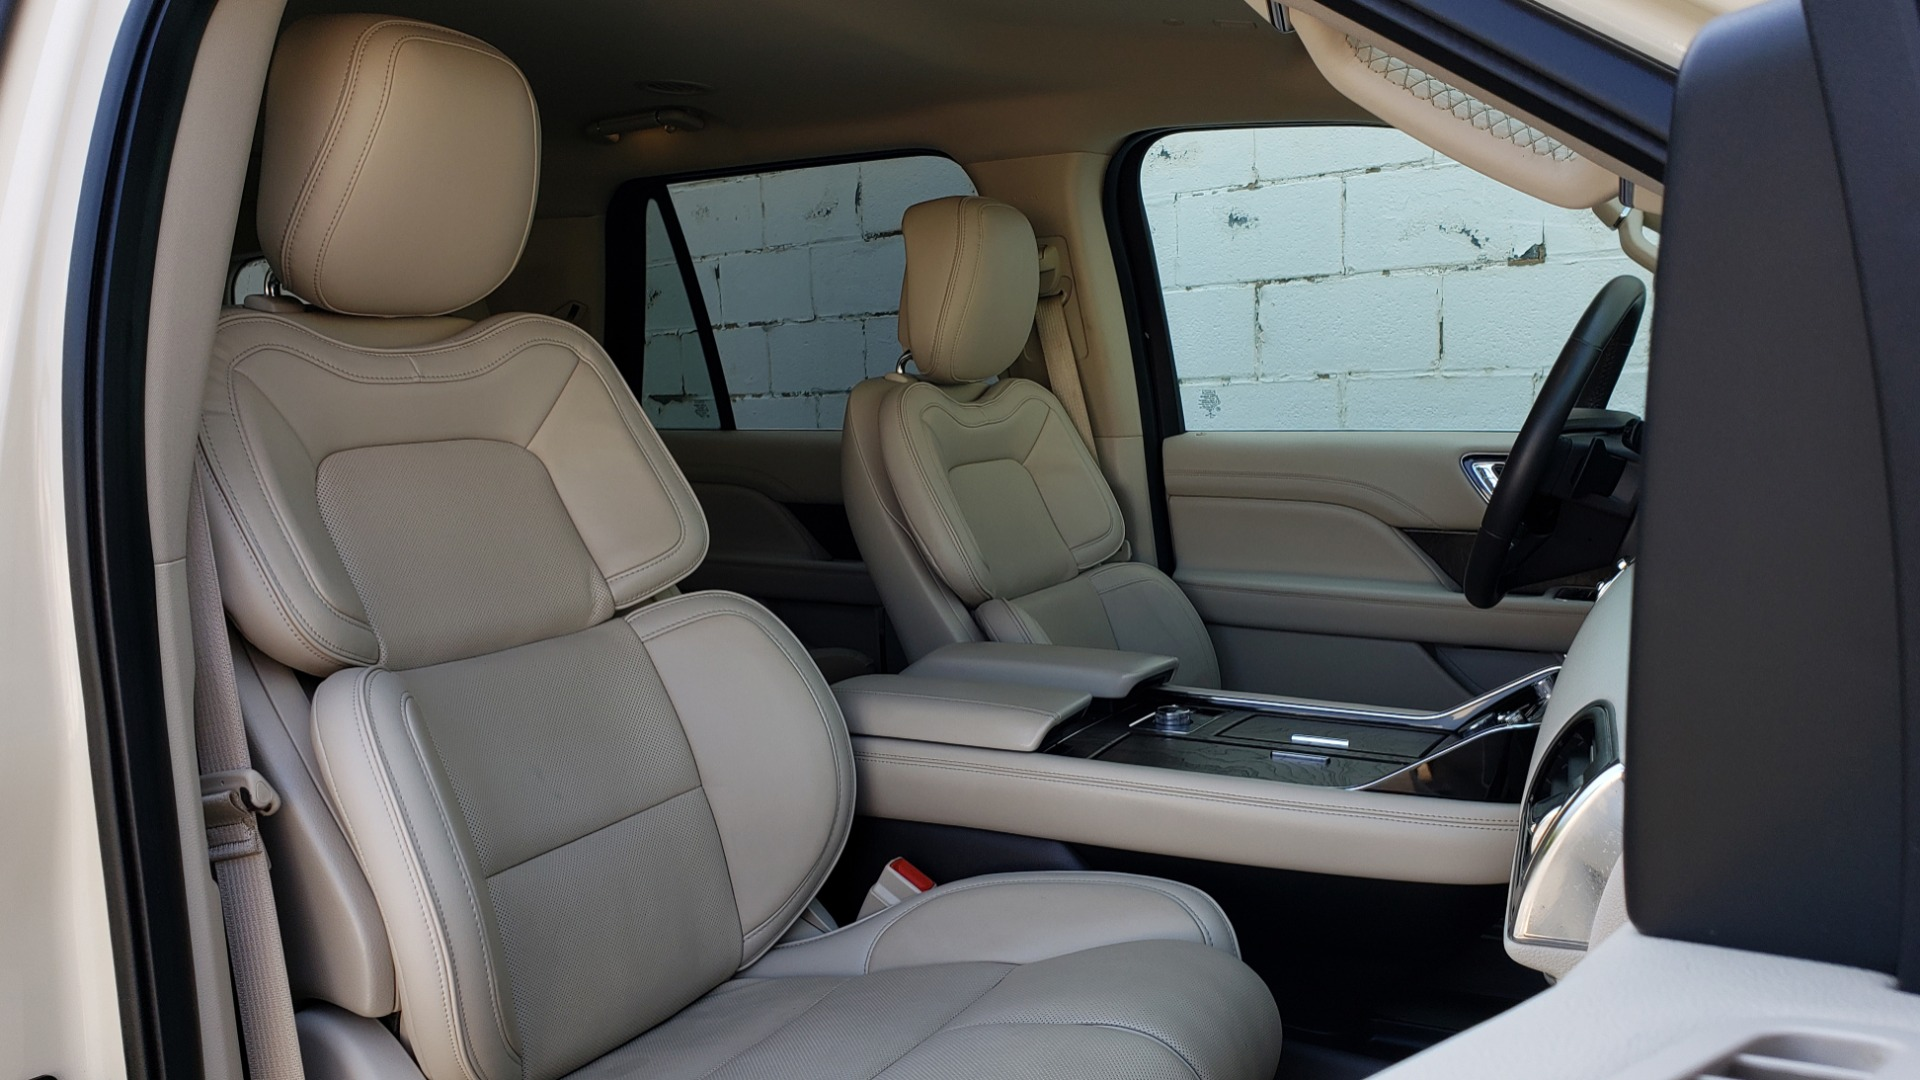 Used 2018 Lincoln NAVIGATOR PREMIERE 4X2 / TWIN-TURBO V6 / NAV / 3-ROW / REARVIEW for sale Sold at Formula Imports in Charlotte NC 28227 79